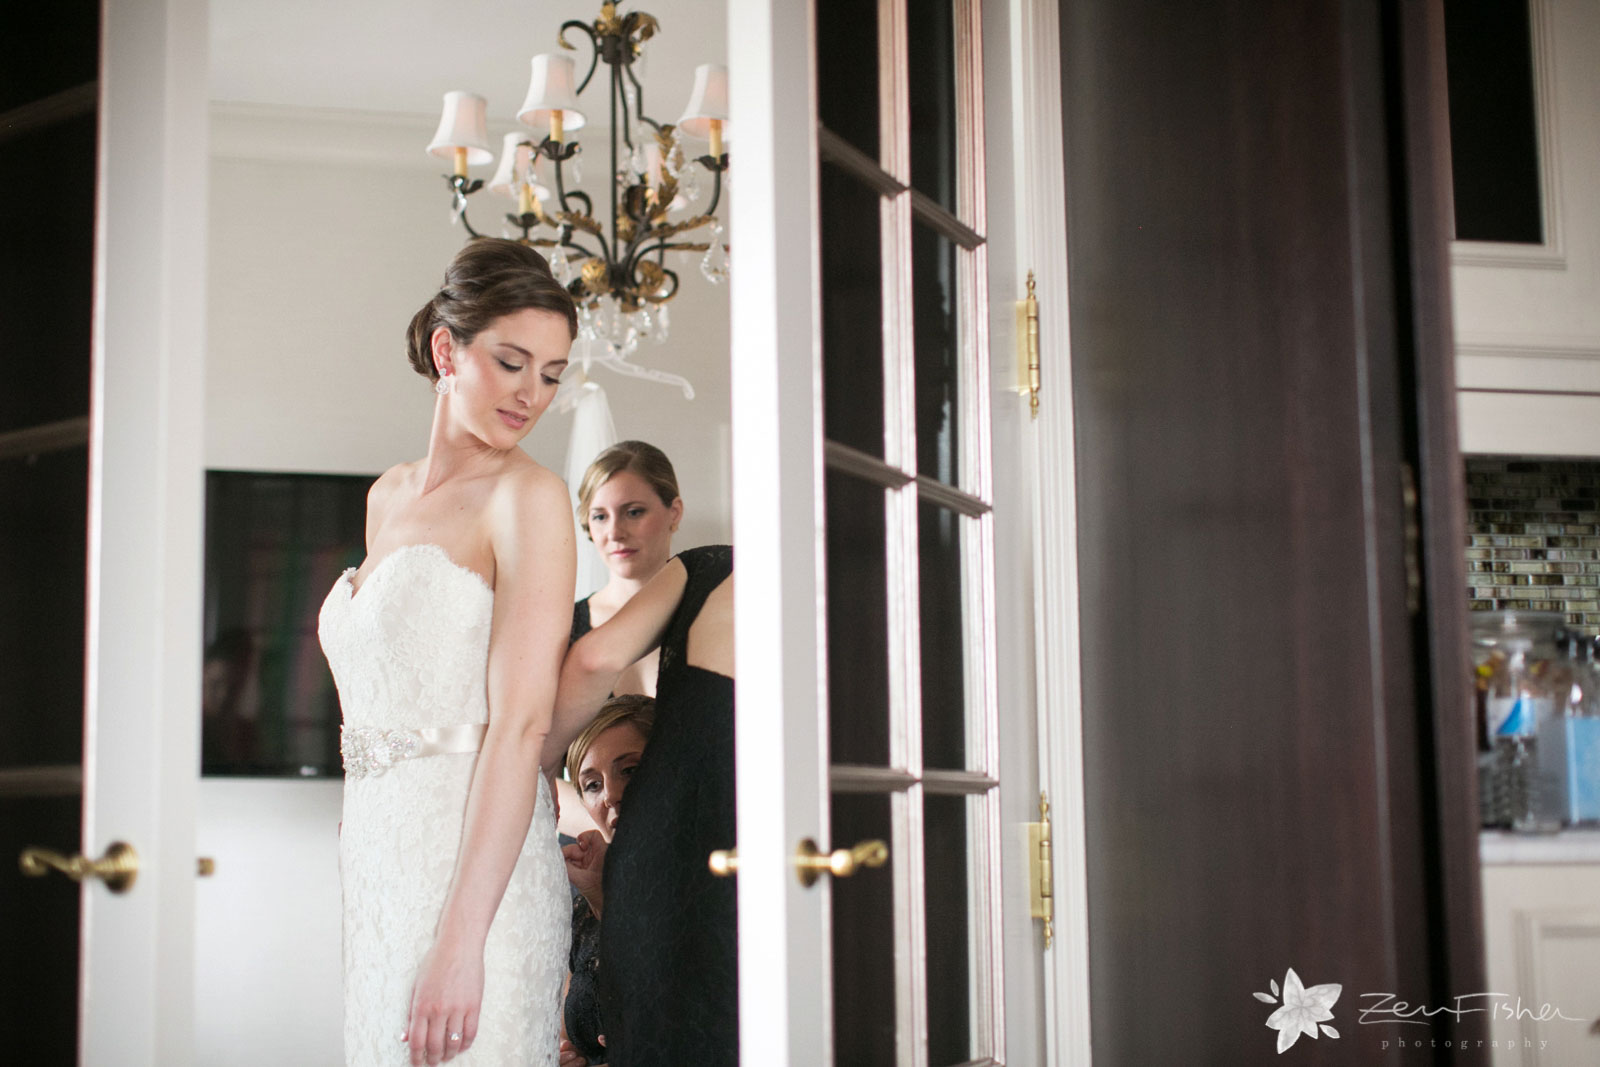 Peeking through French doors at the bride, bridesmaids helping the bride get into her wedding dress.